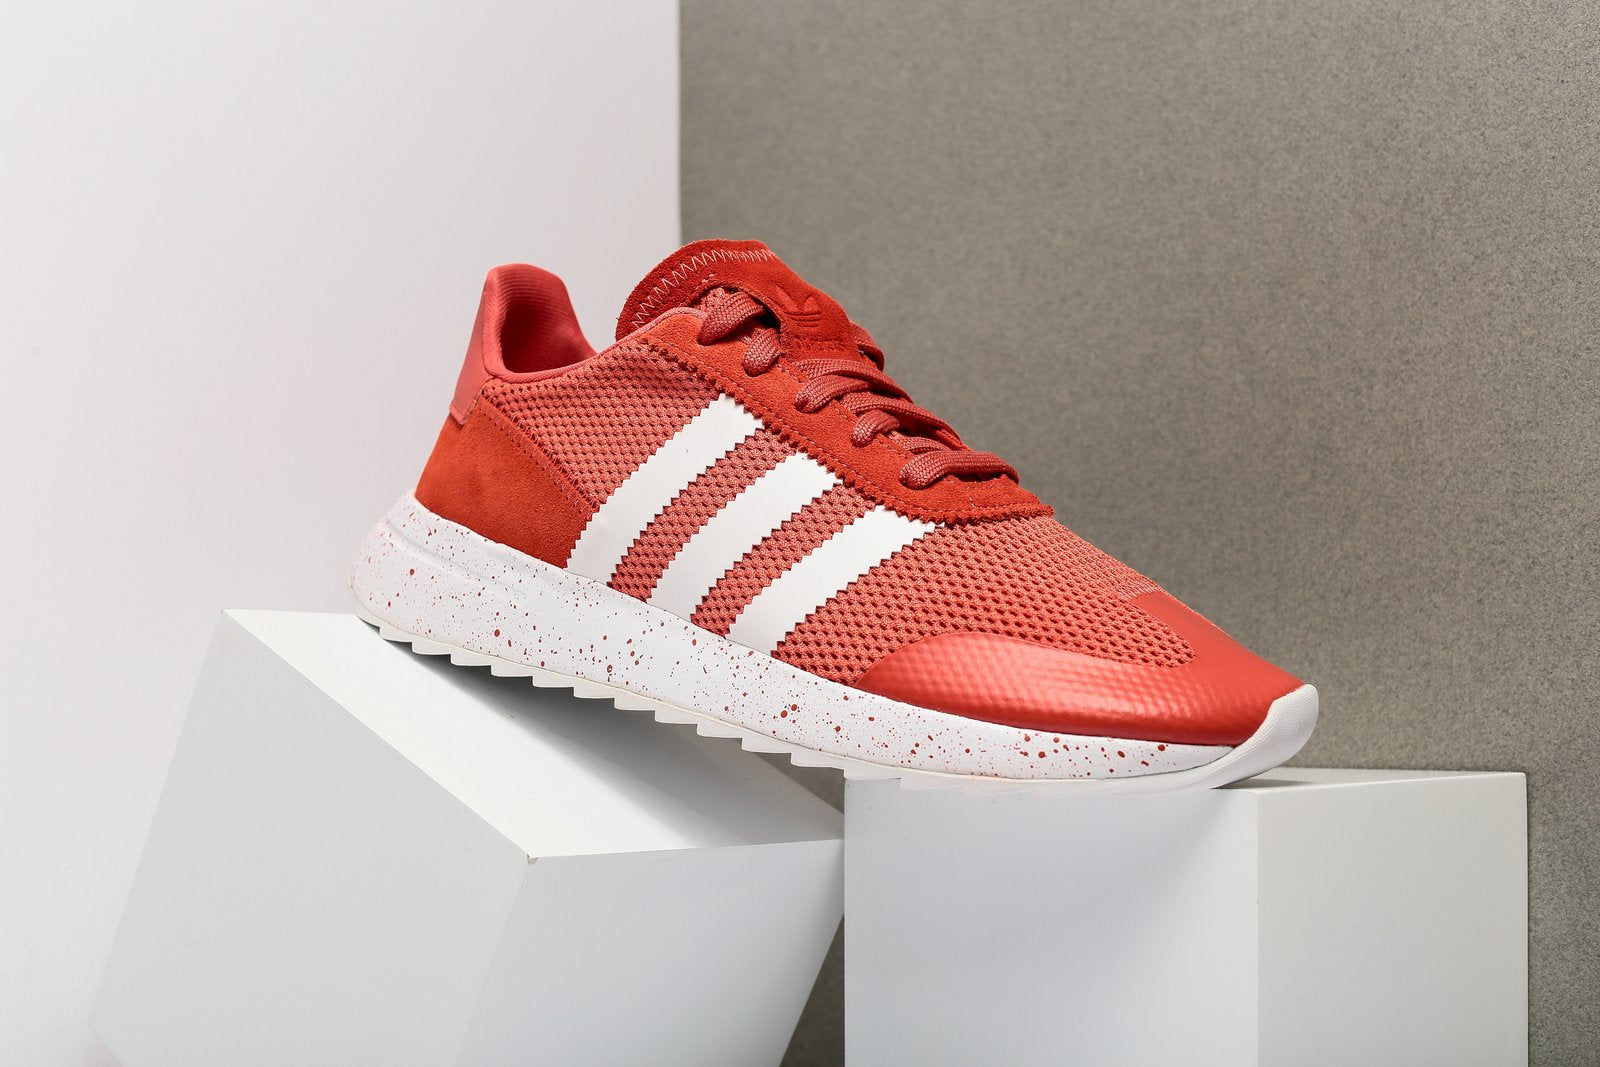 best authentic 5b27c 1d3ed ADIDAS FLB RUNNER WOMENS - Oneness Boutique